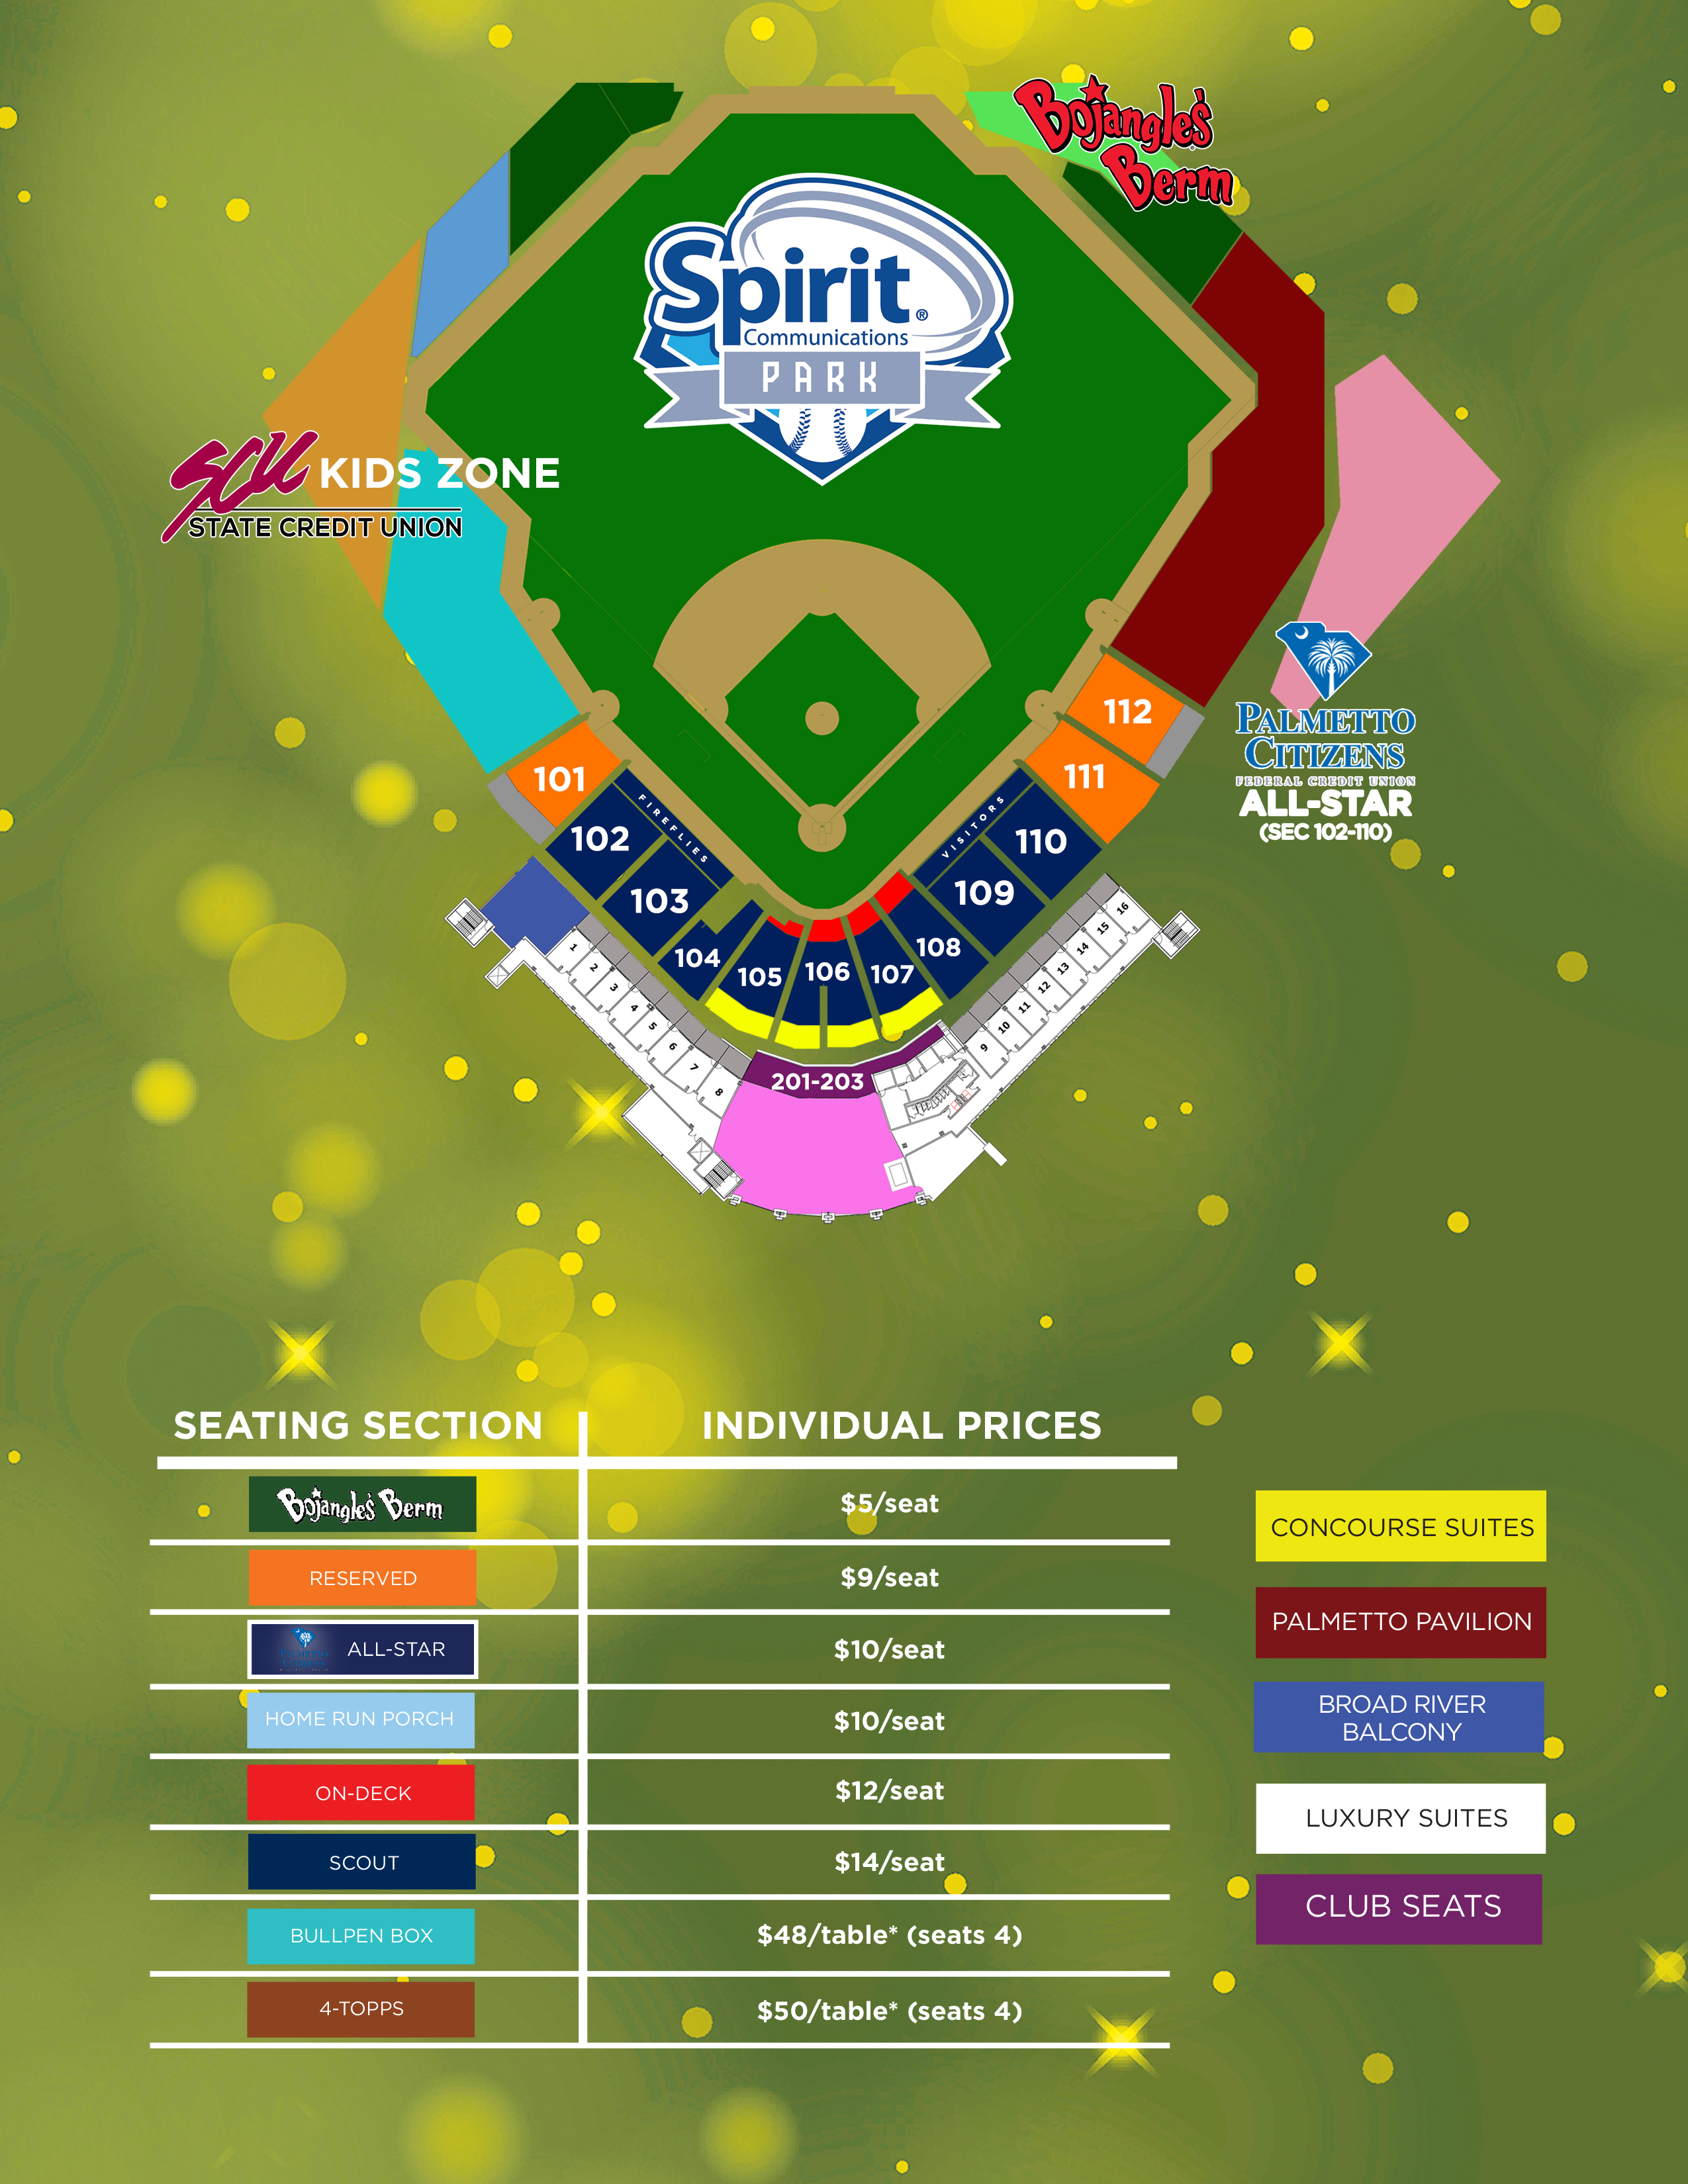 spirit communications park seating map